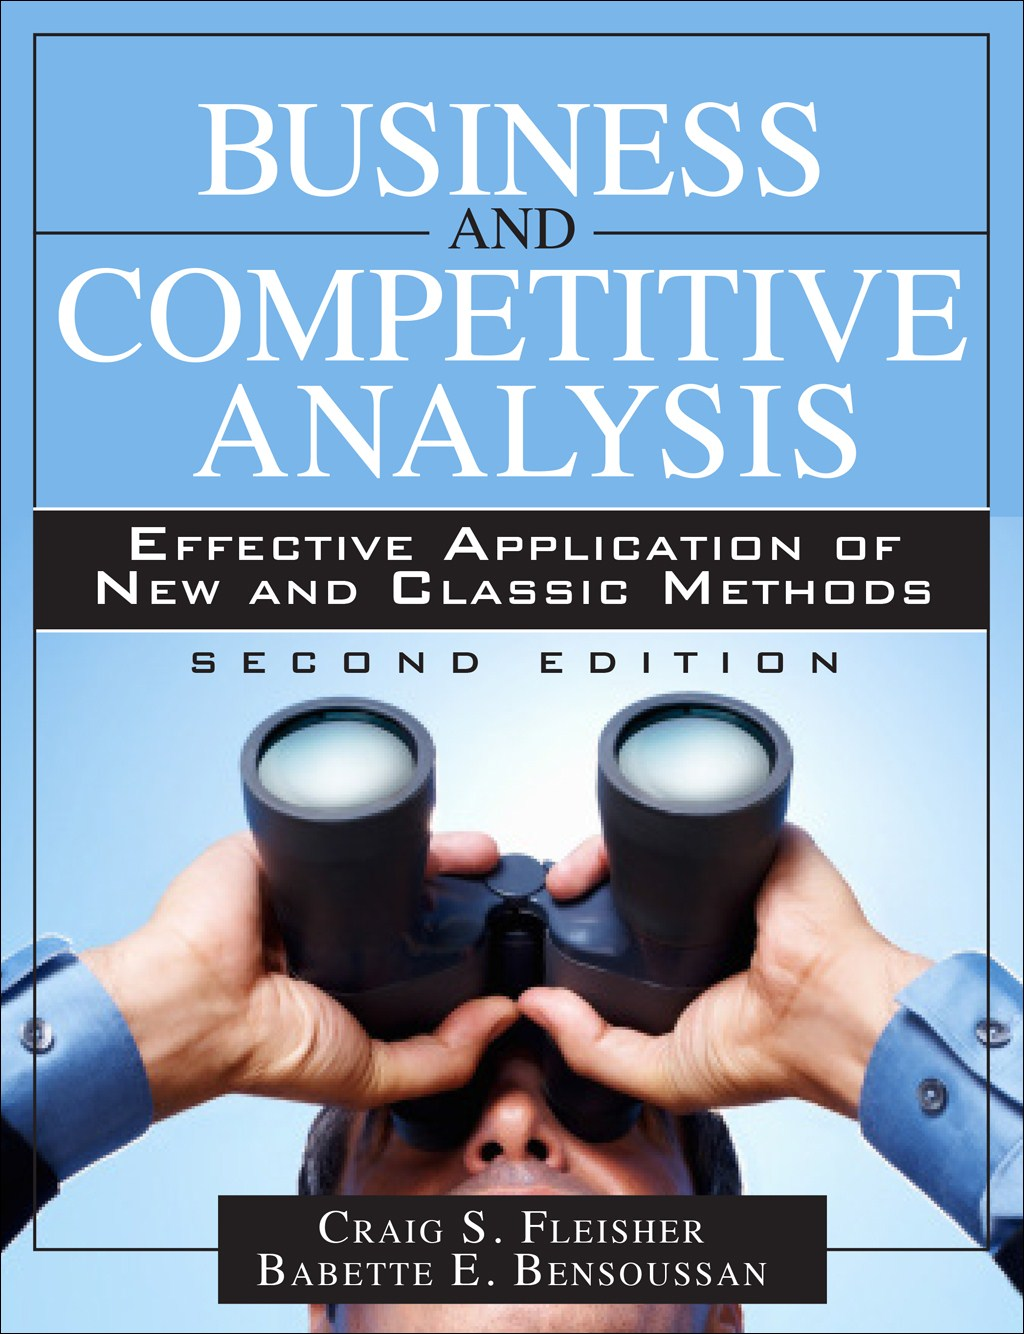 Business and Competitive Analysis: Effective Application of New and Classic Methods, 2nd Edition